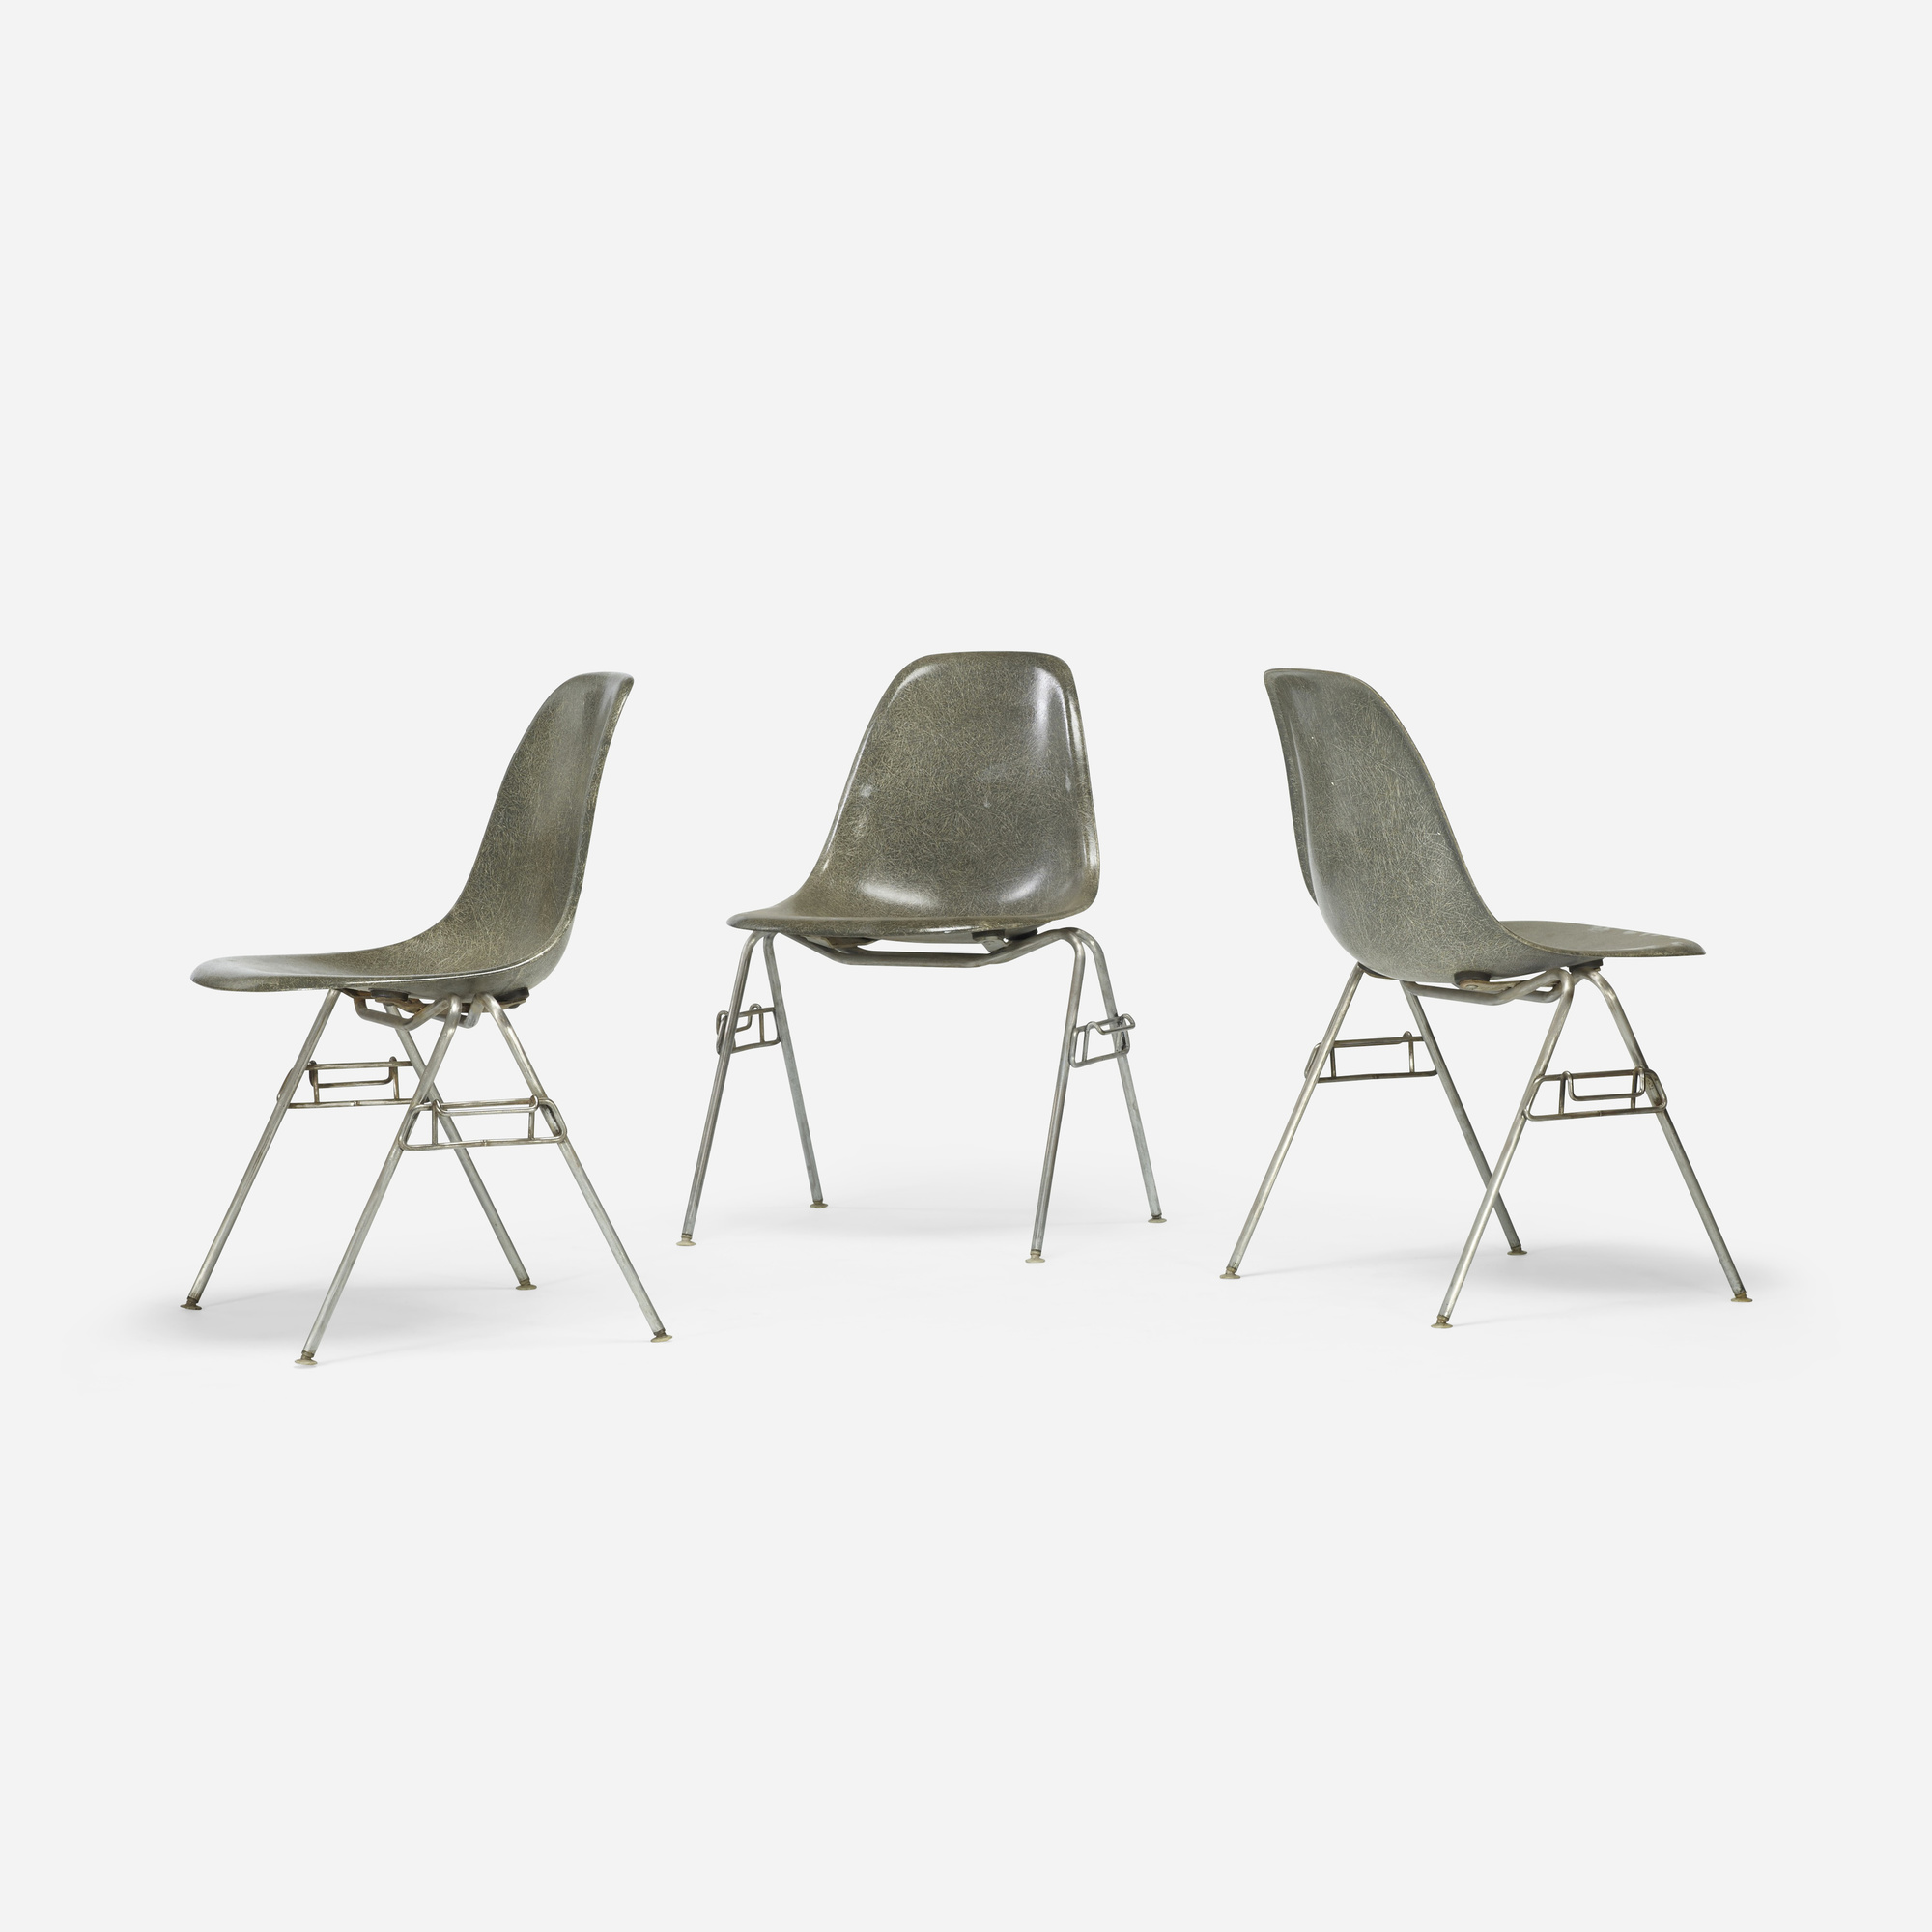 262: Charles and Ray Eames / DSSs, set of three (1 of 2)